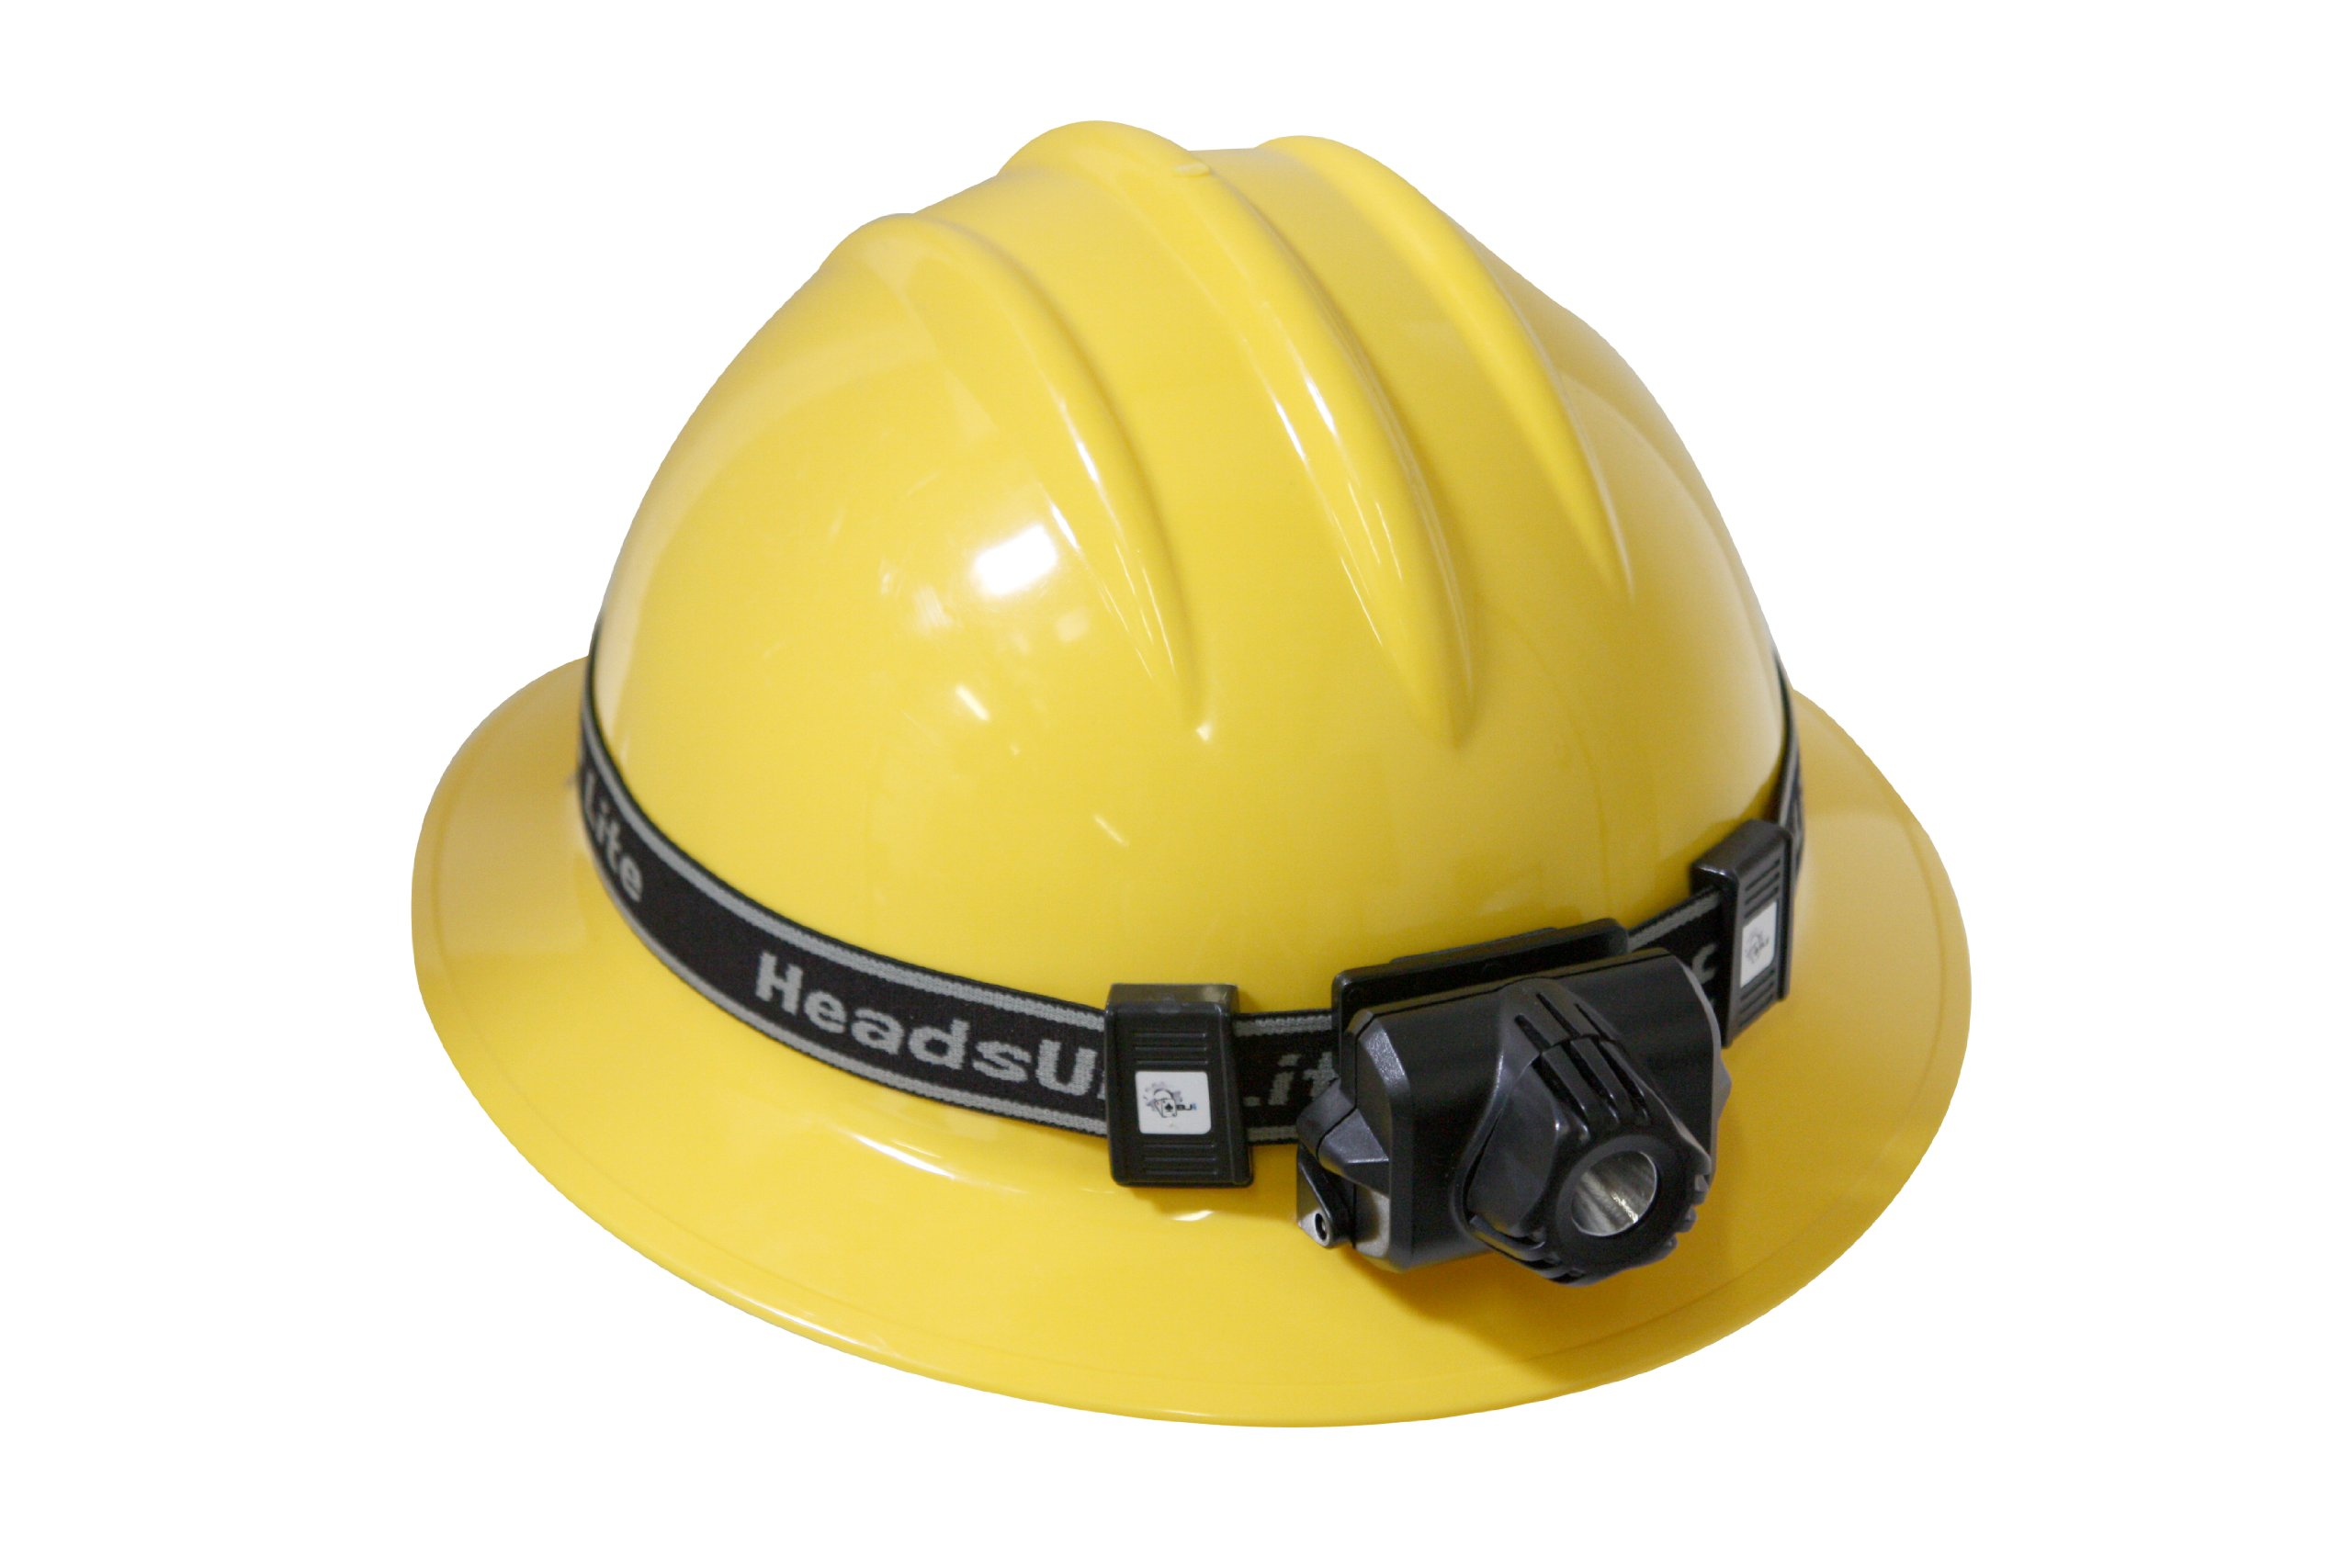 Blackjack Industrial BJi001 Hard Hat Clips for Headlamps and Lights | Fits all Hard Hats | Holds Lights and Straps Securely in Place | Utilities | Oil and Gas | Construction Workers (Pack of 4) by Blackjack Industrial (Image #6)